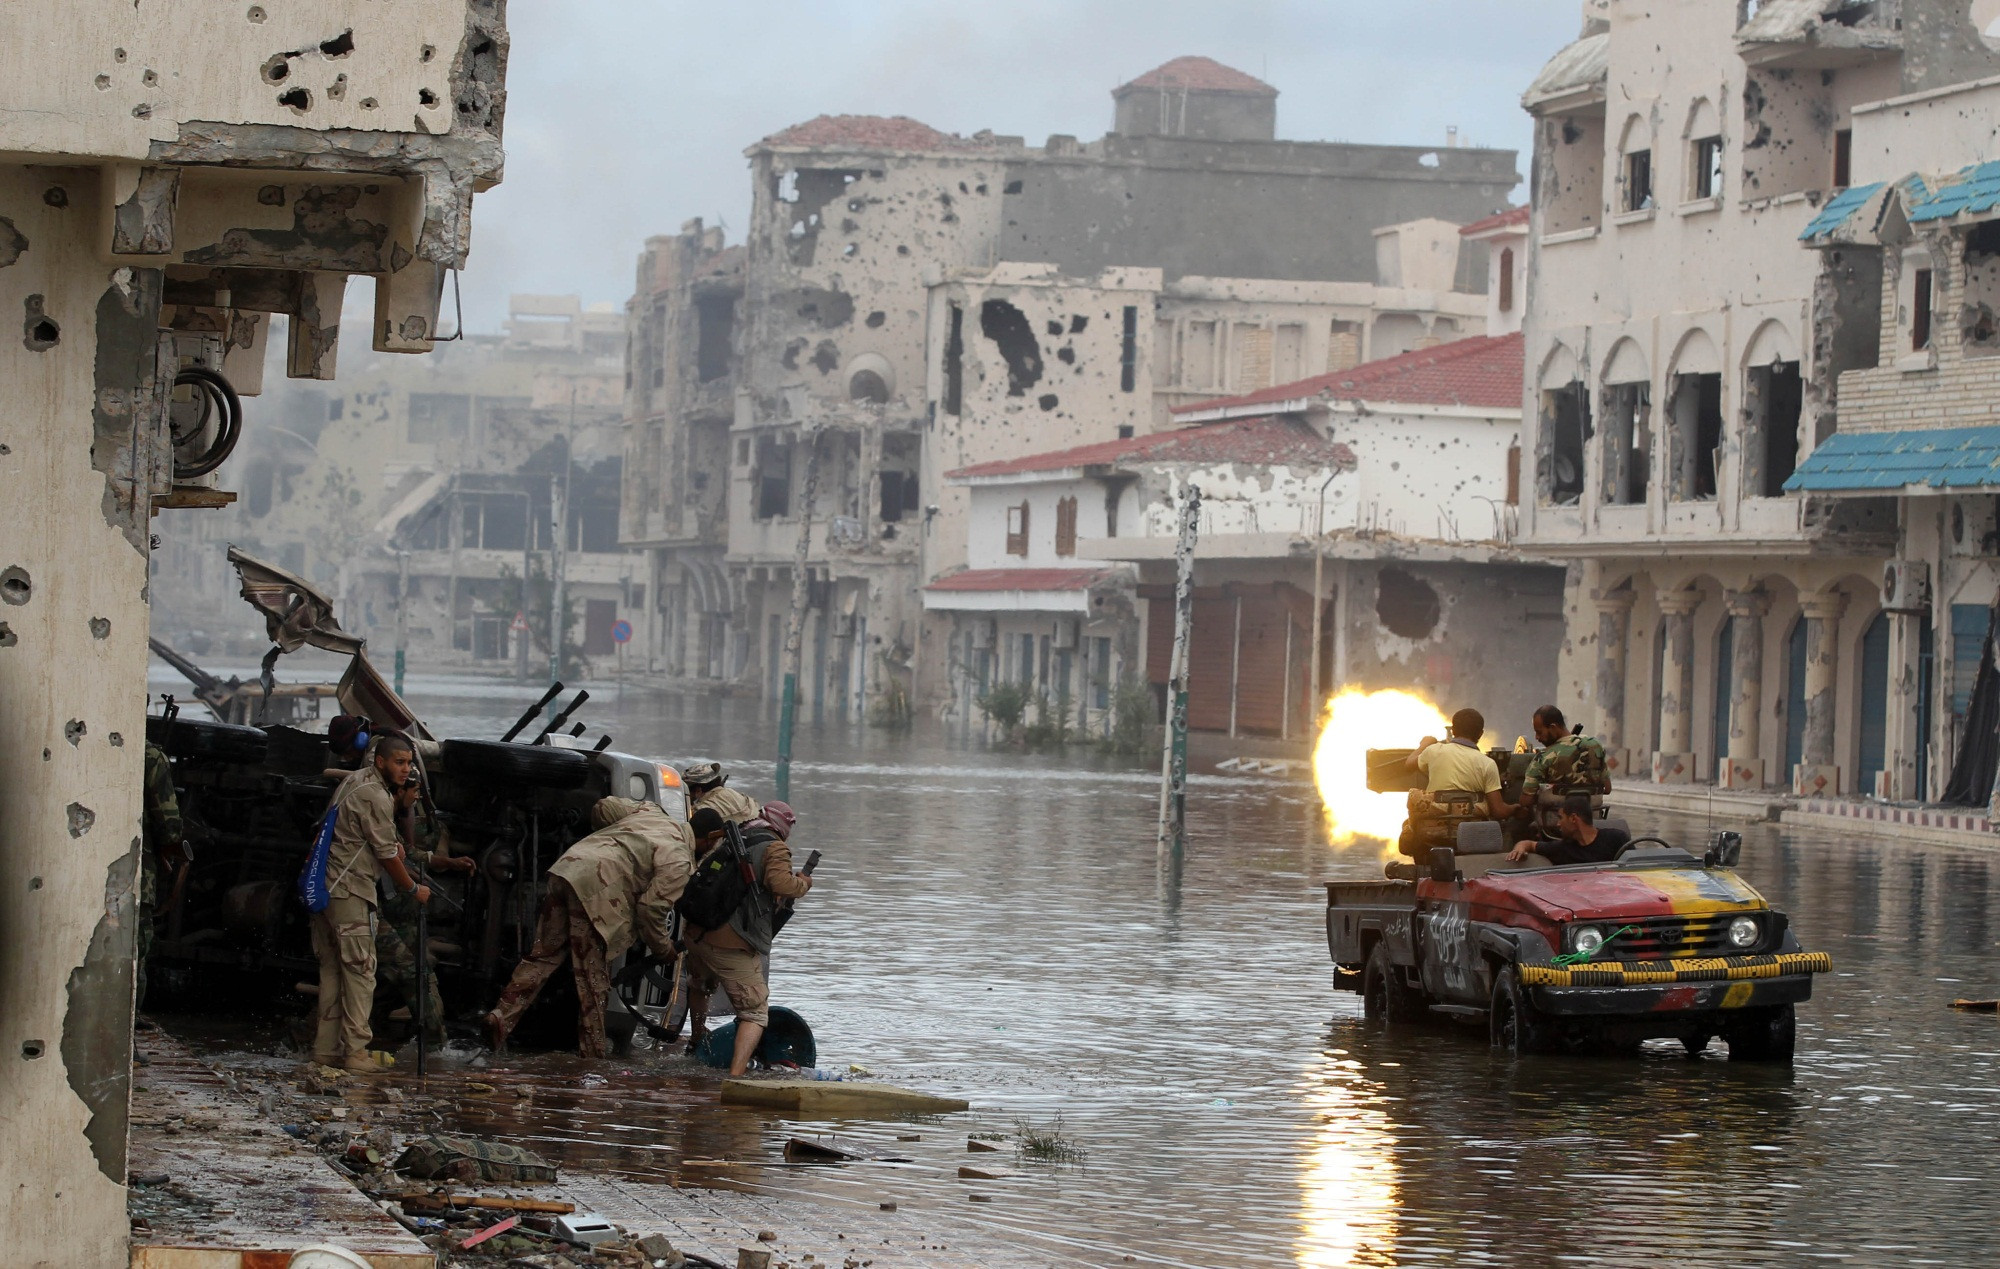 war in syria The syrian civil war is a conflict between its long-serving government and those seeking to boot it out of office the assad family has held power in syria since 1971 first it was hafez al-assad.